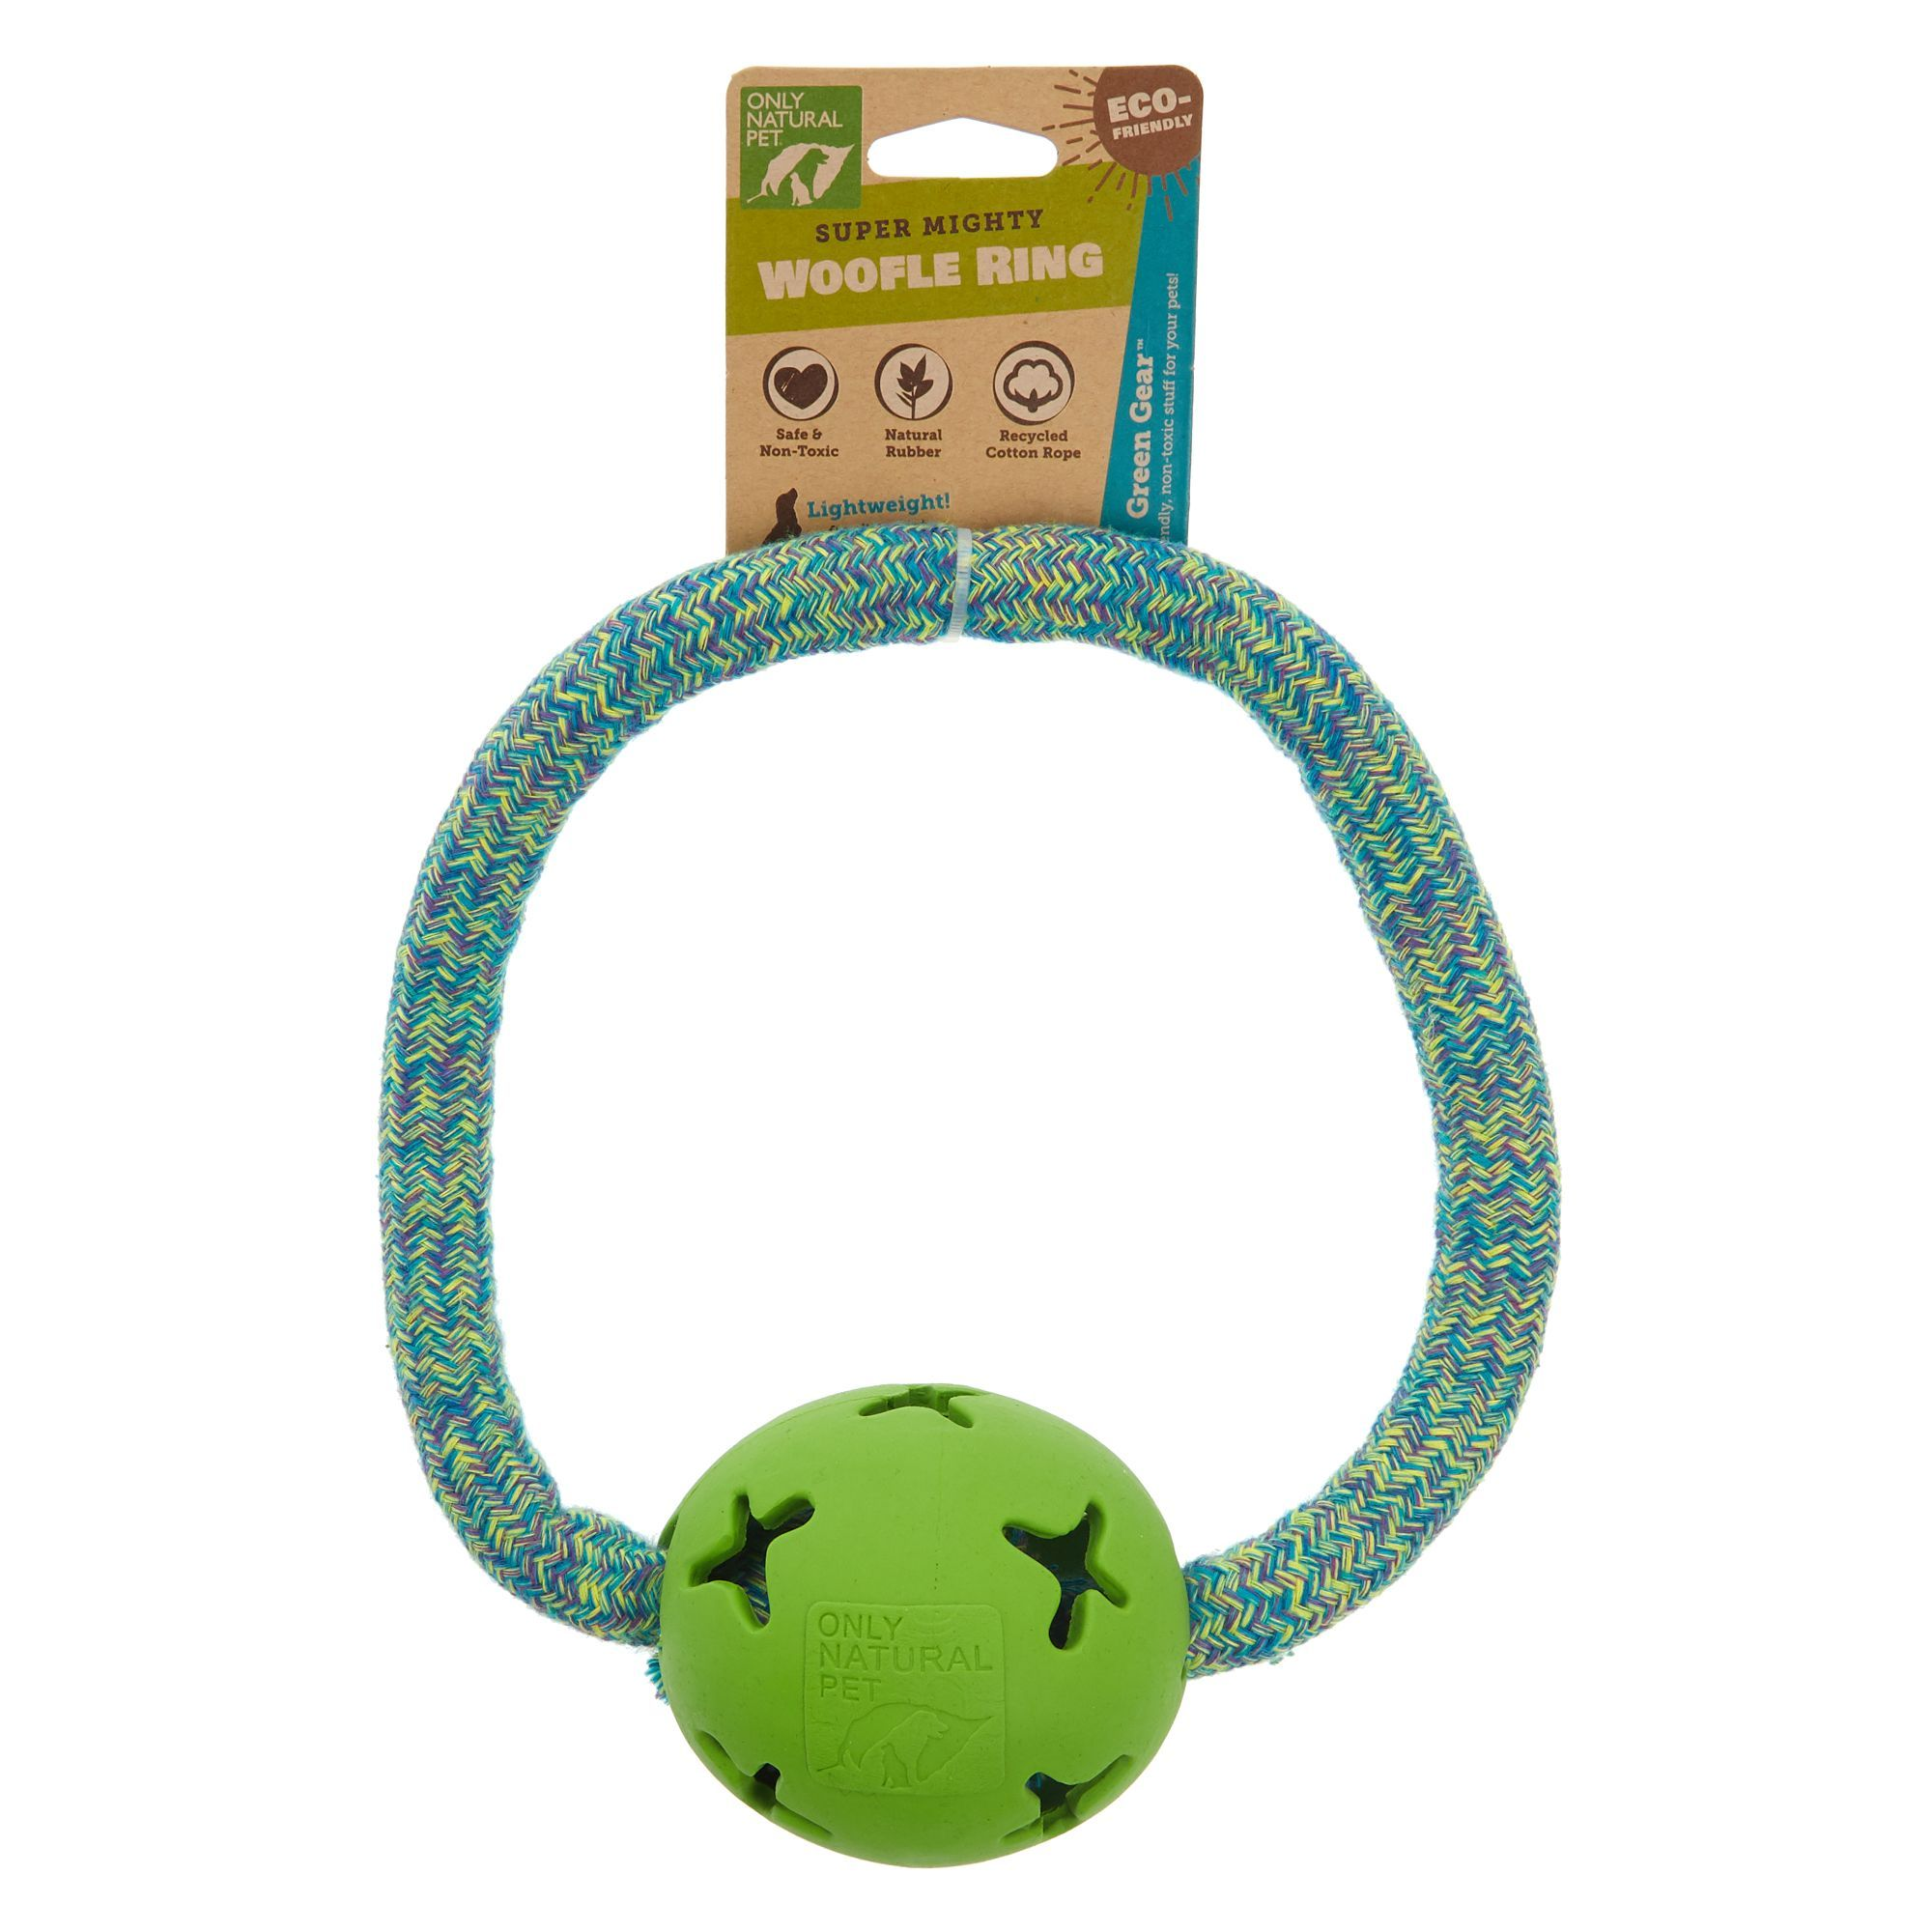 Only Natural Pet Super Mighty Woofle Ring Dog Toy Rope Natural